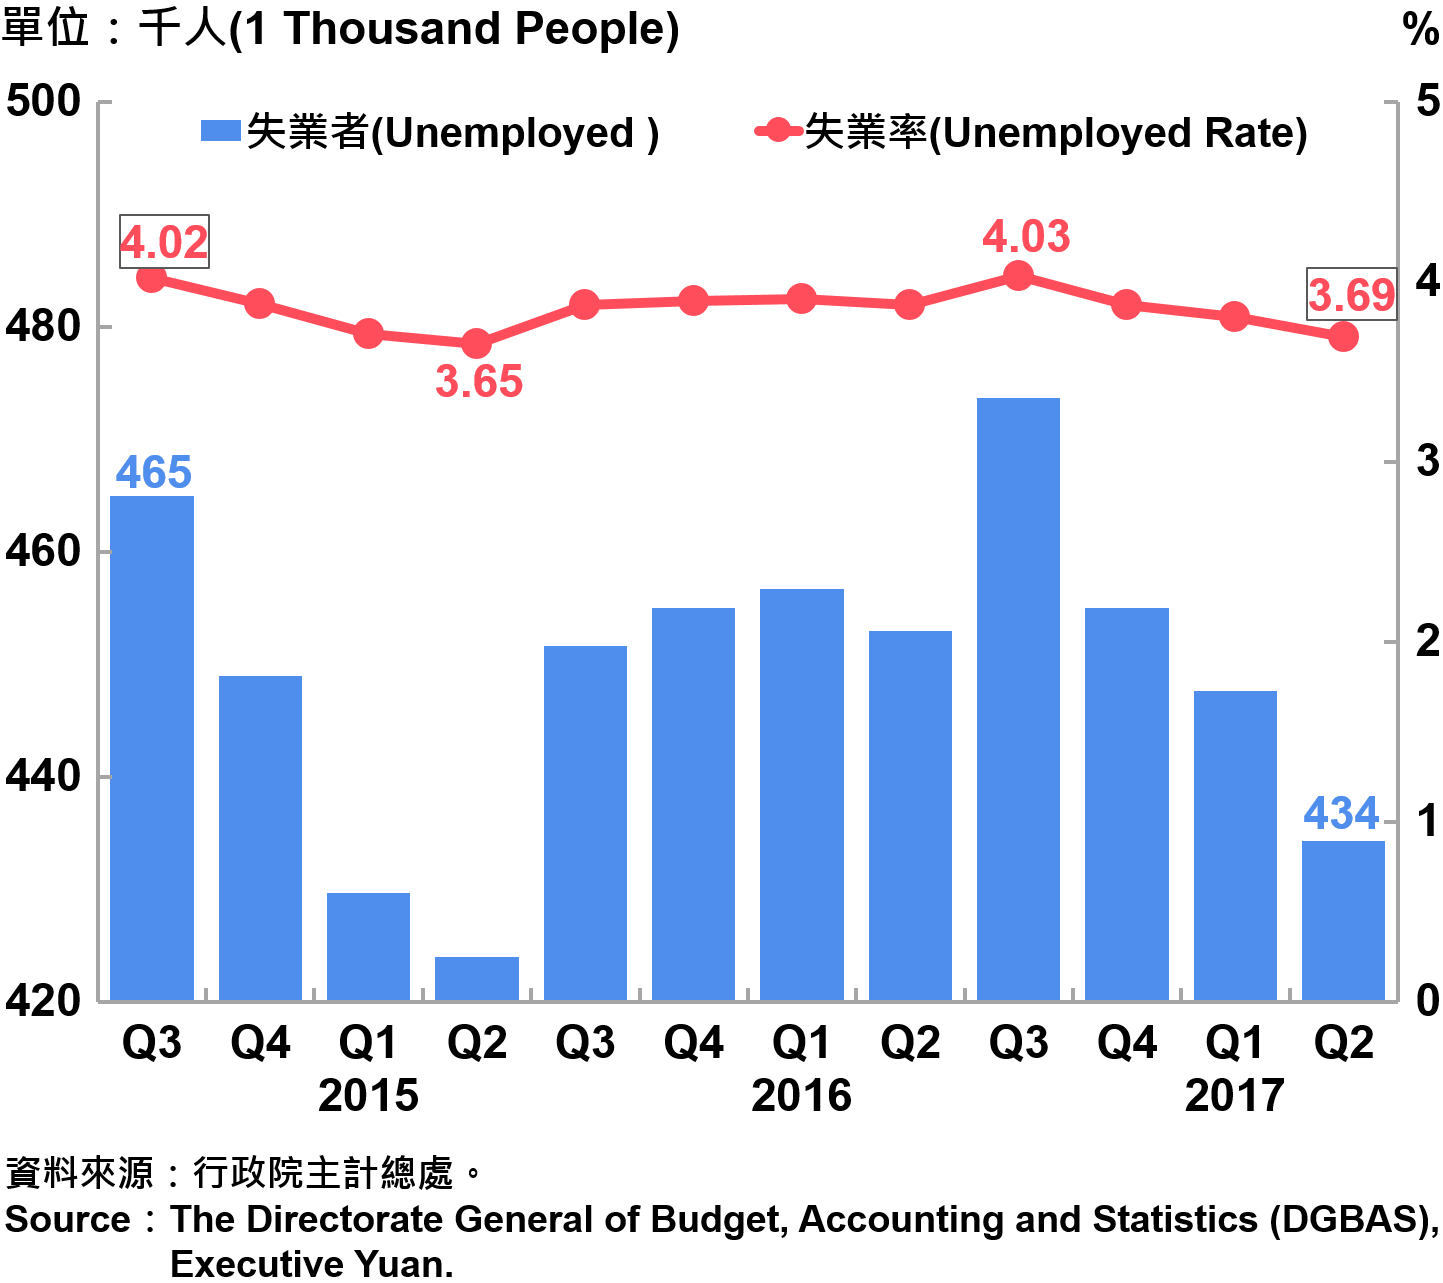 圖6-2 失業人數及失業率 Unemployed and Unemployed Rate